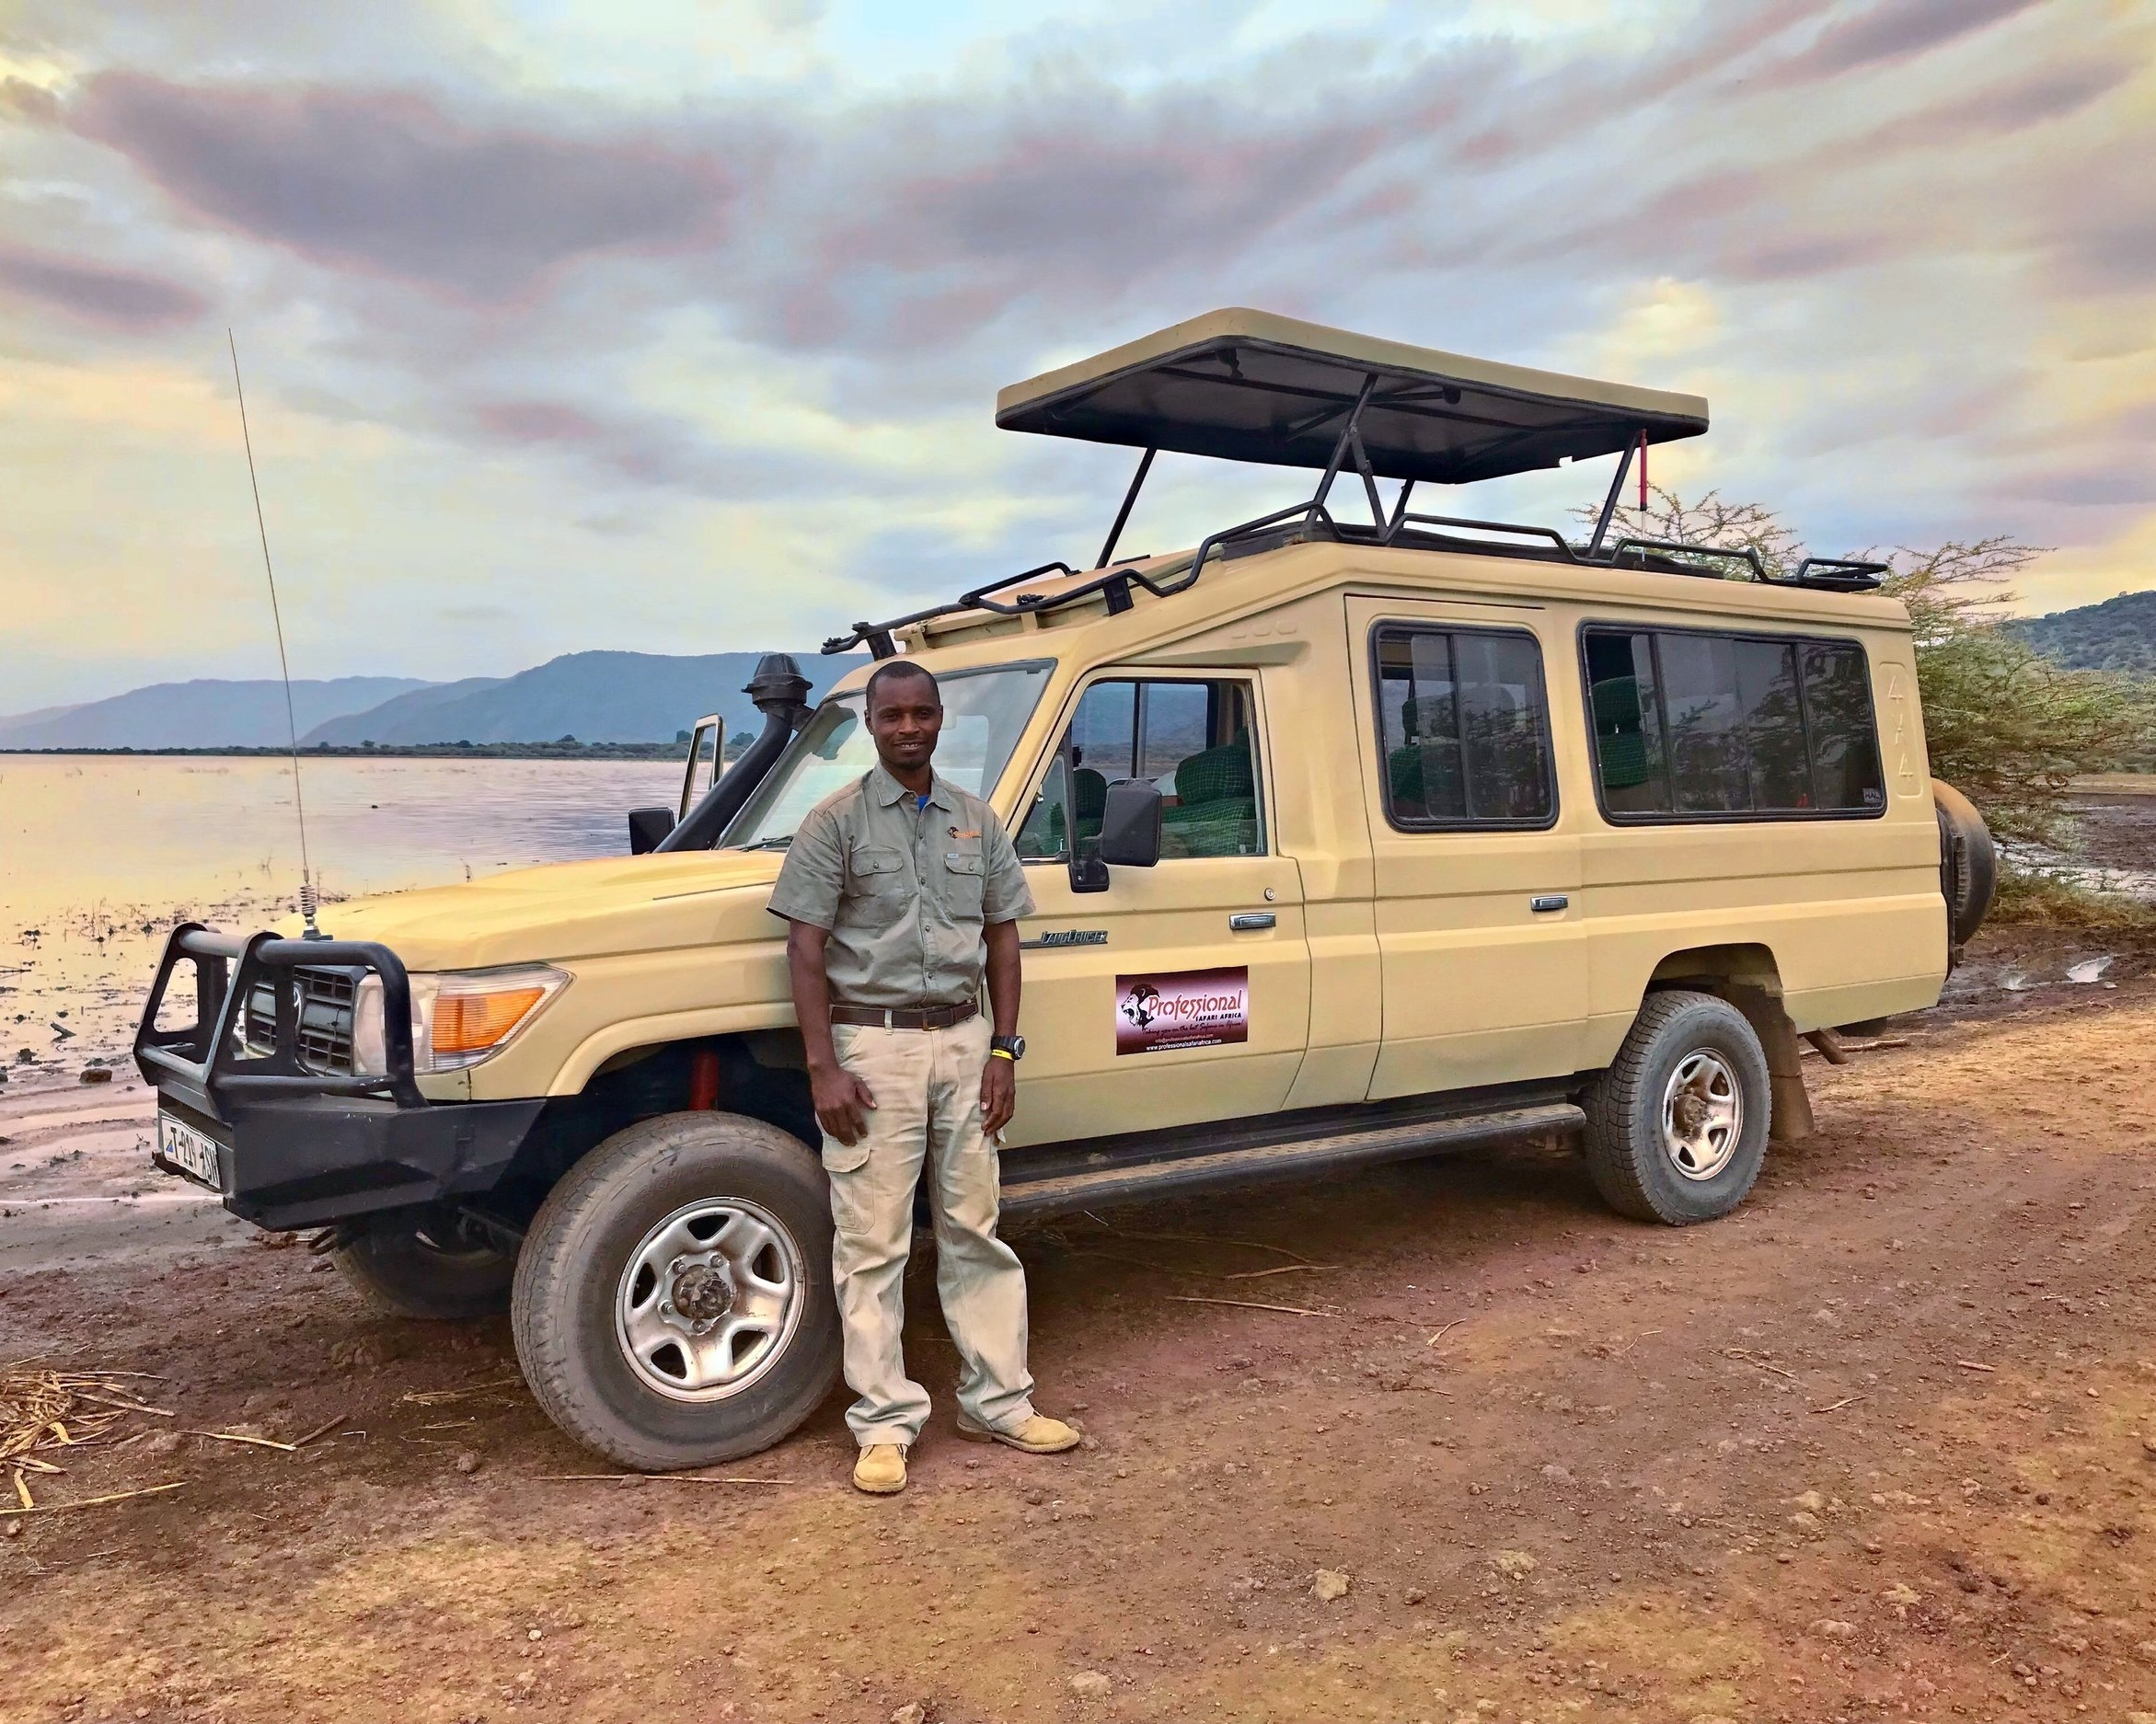 Medison Samwel is the owner and manager of Professional Safaris Africa and has extensive experience leading safaris all over best destinations in Africa!  With decades of experience within these remote and pristine areas, Medison has learned the true essence of safari and discovered his innate ability to bridge the gap between man and the natural environment. In addition to his general knowledge, experience and ability for interpreting the bush, Medison's strengths as a private guide lie in his sensitive approach towards wildlife and wilderness areas, connecting those less familiar to this environment through sensory engagement.  Medison is sure you'll love what the African wilderness will do for your soul.